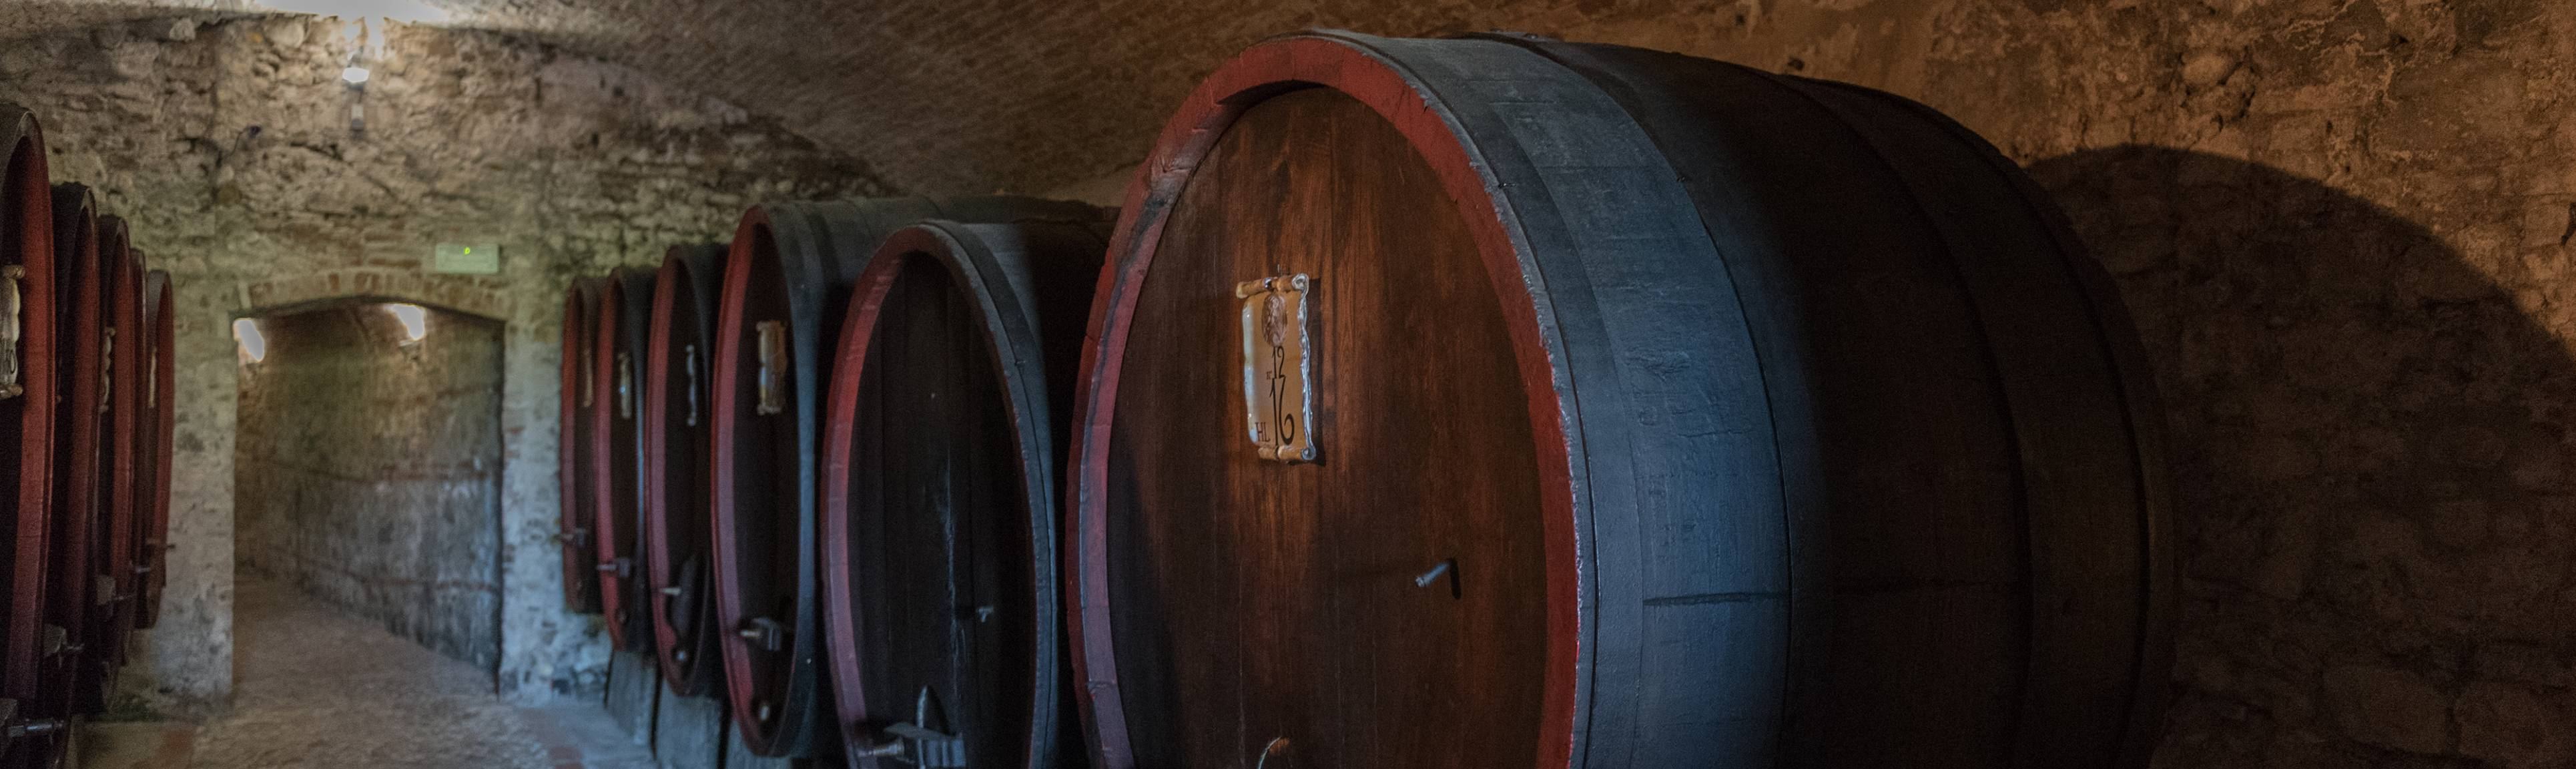 Large wooden wine barrels along cellar wall in Italy